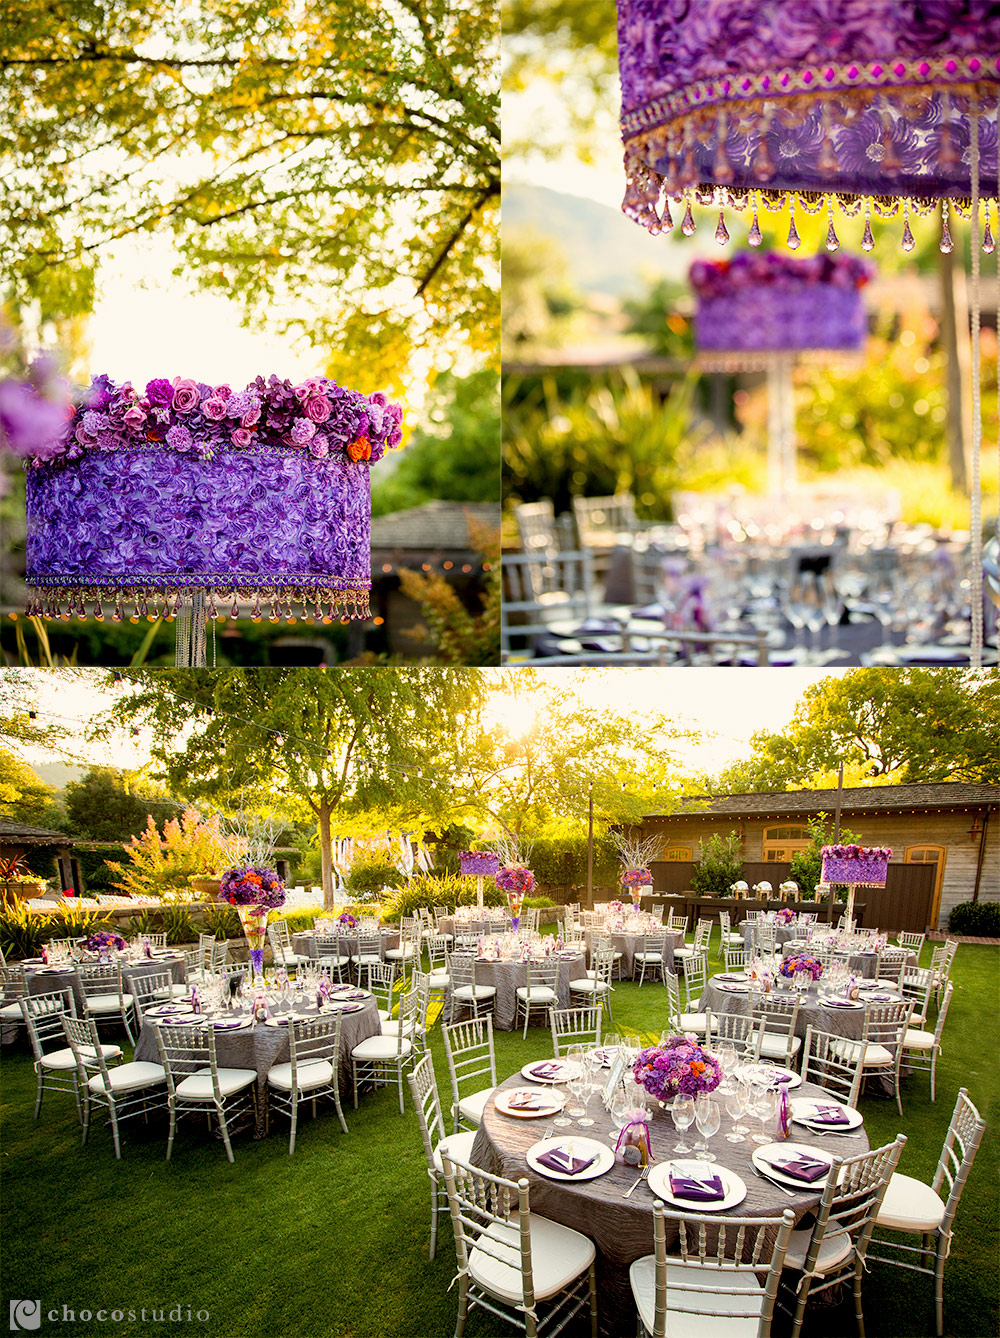 Vintage Inn Yountville wedding reception details